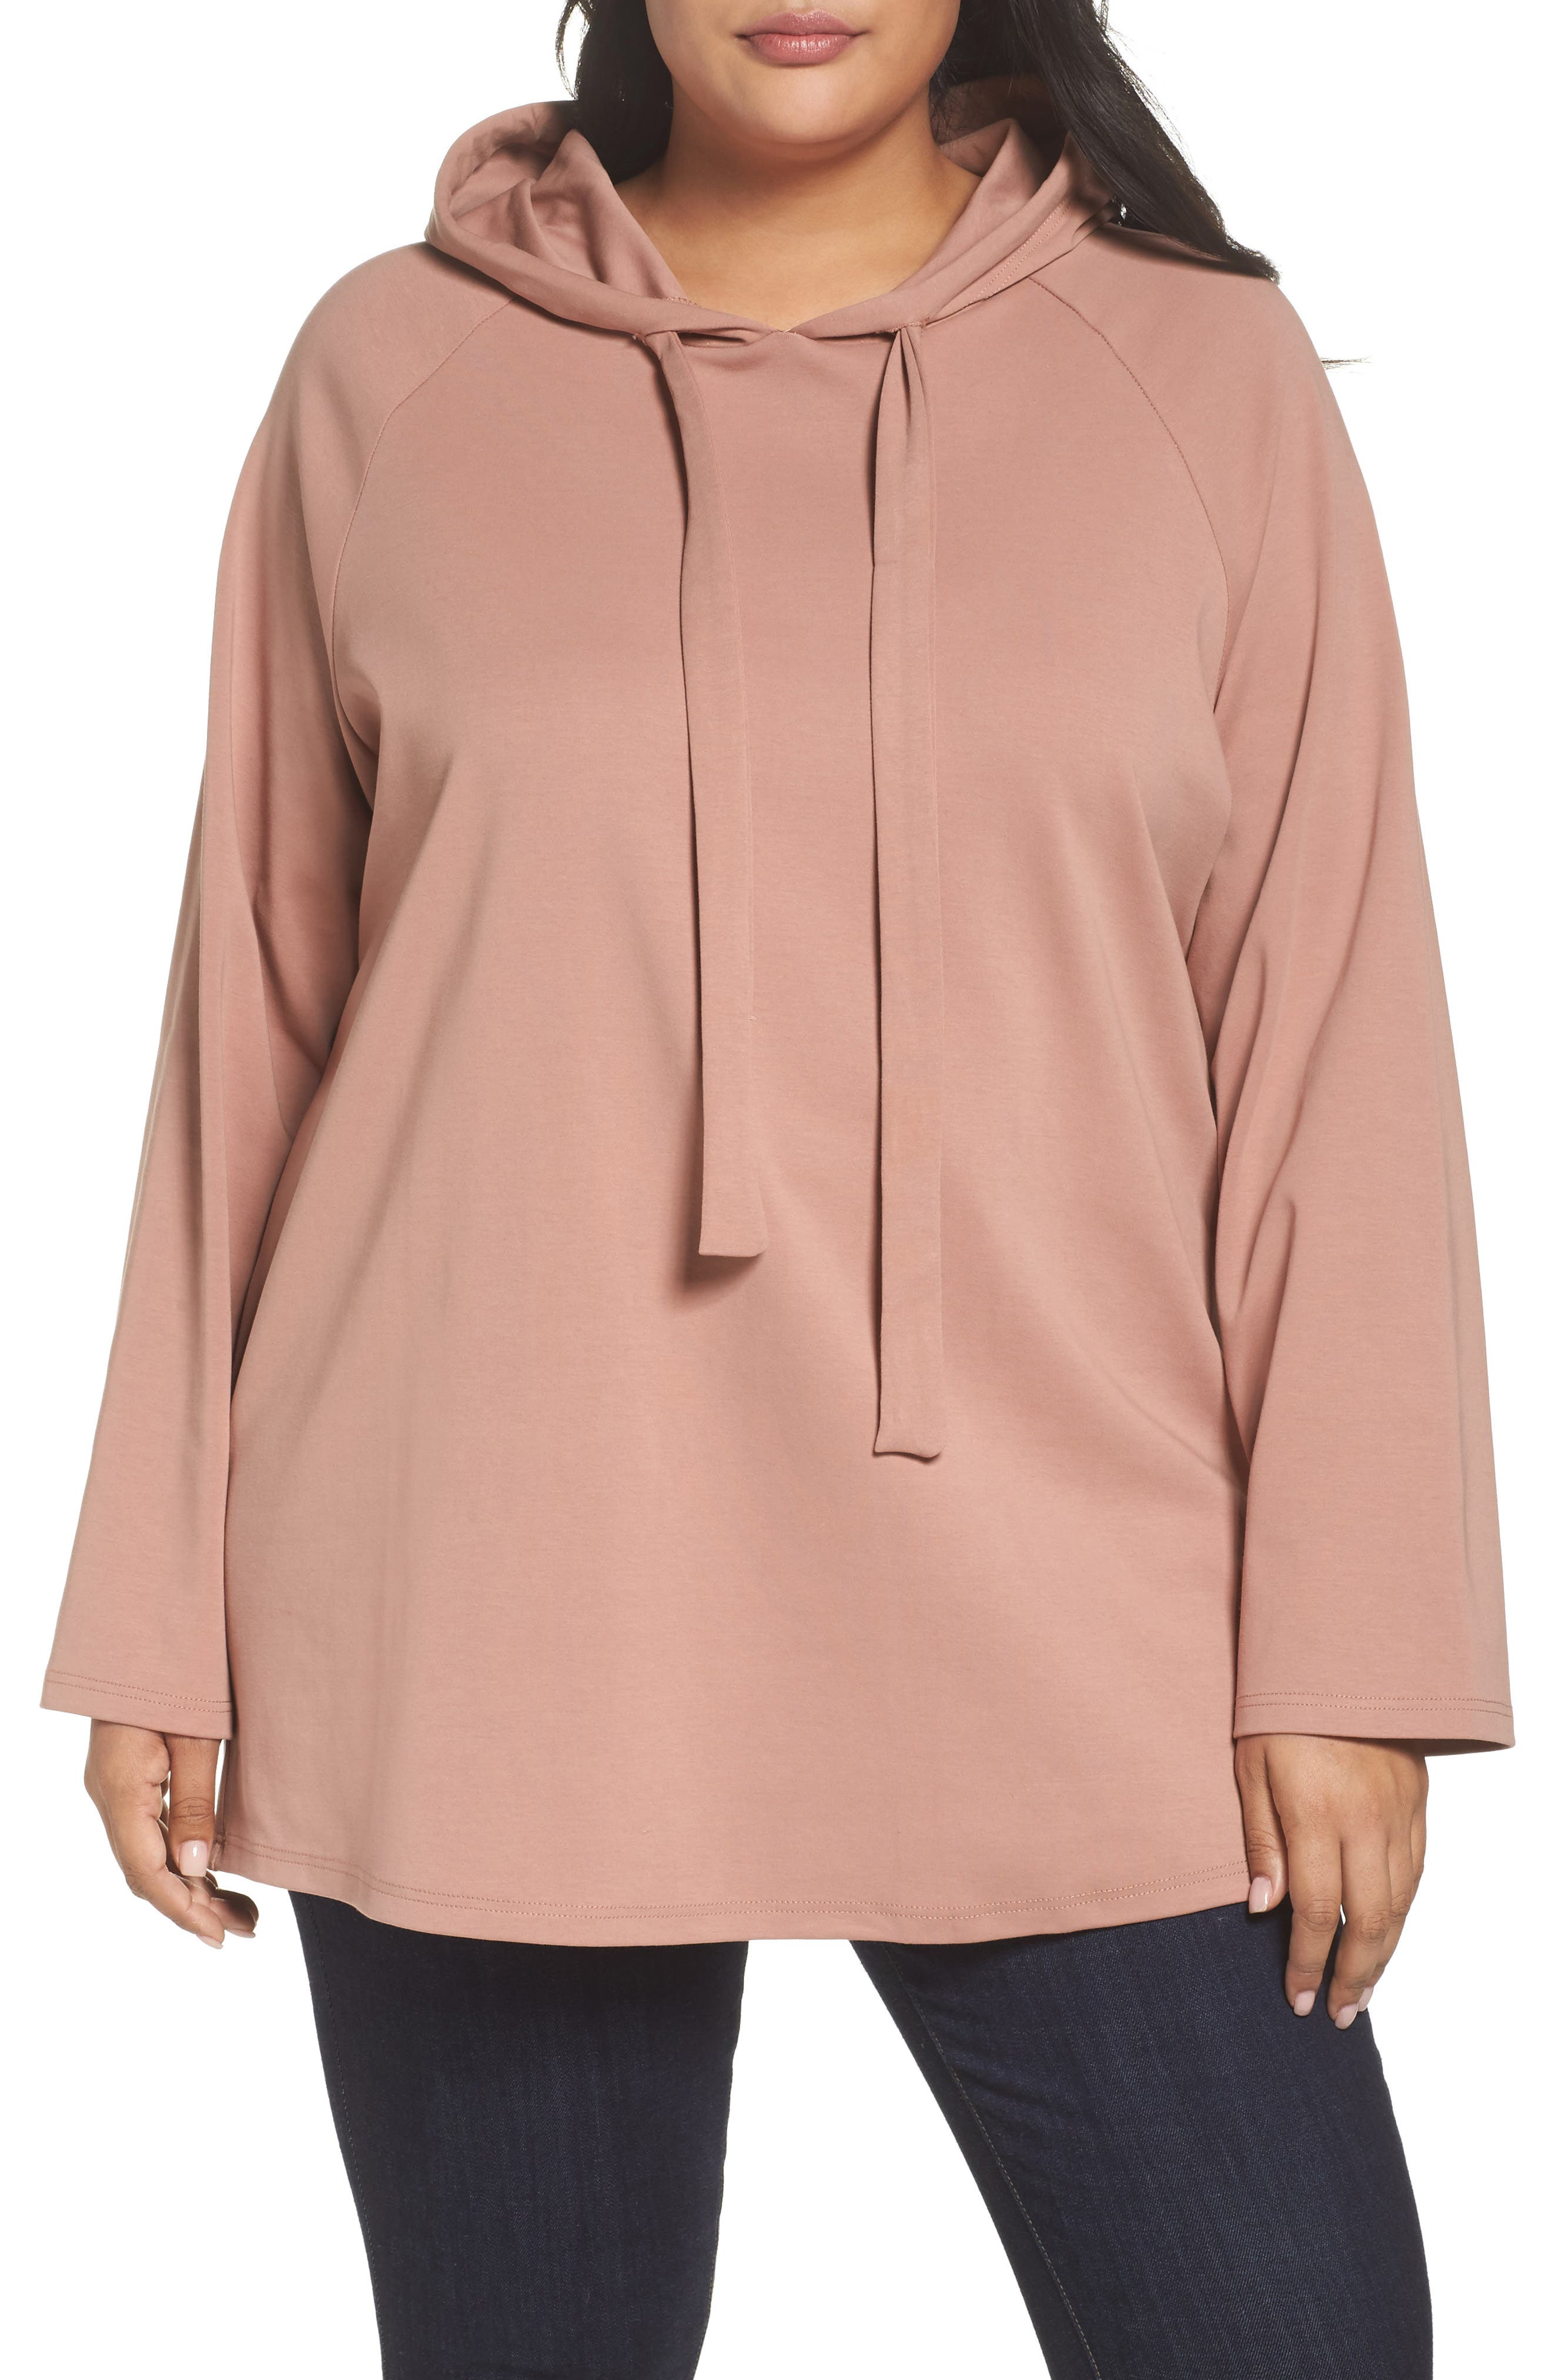 Hoodie Tunic,                             Main thumbnail 1, color,                             Dusty Rose